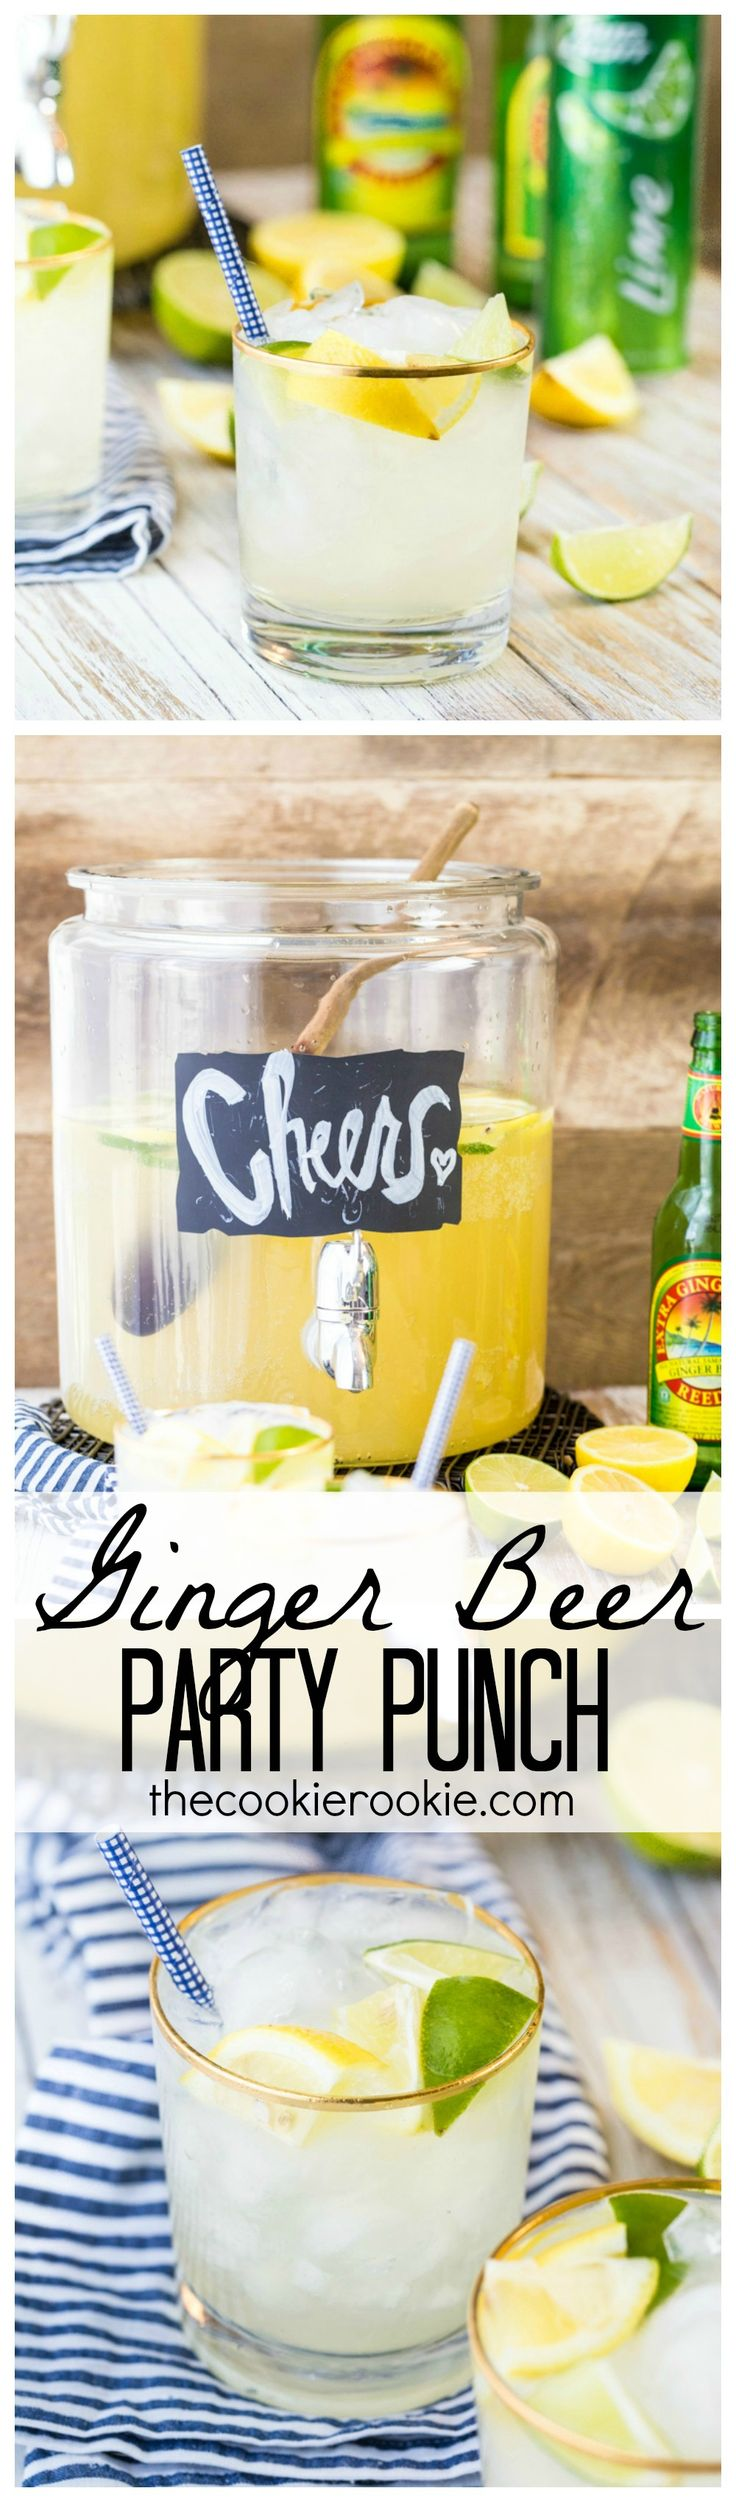 Ginger Beer Party Punch is a MUST for any party! Super easy with only THREE ingredients! Delicious, easy, and great for a crowd!